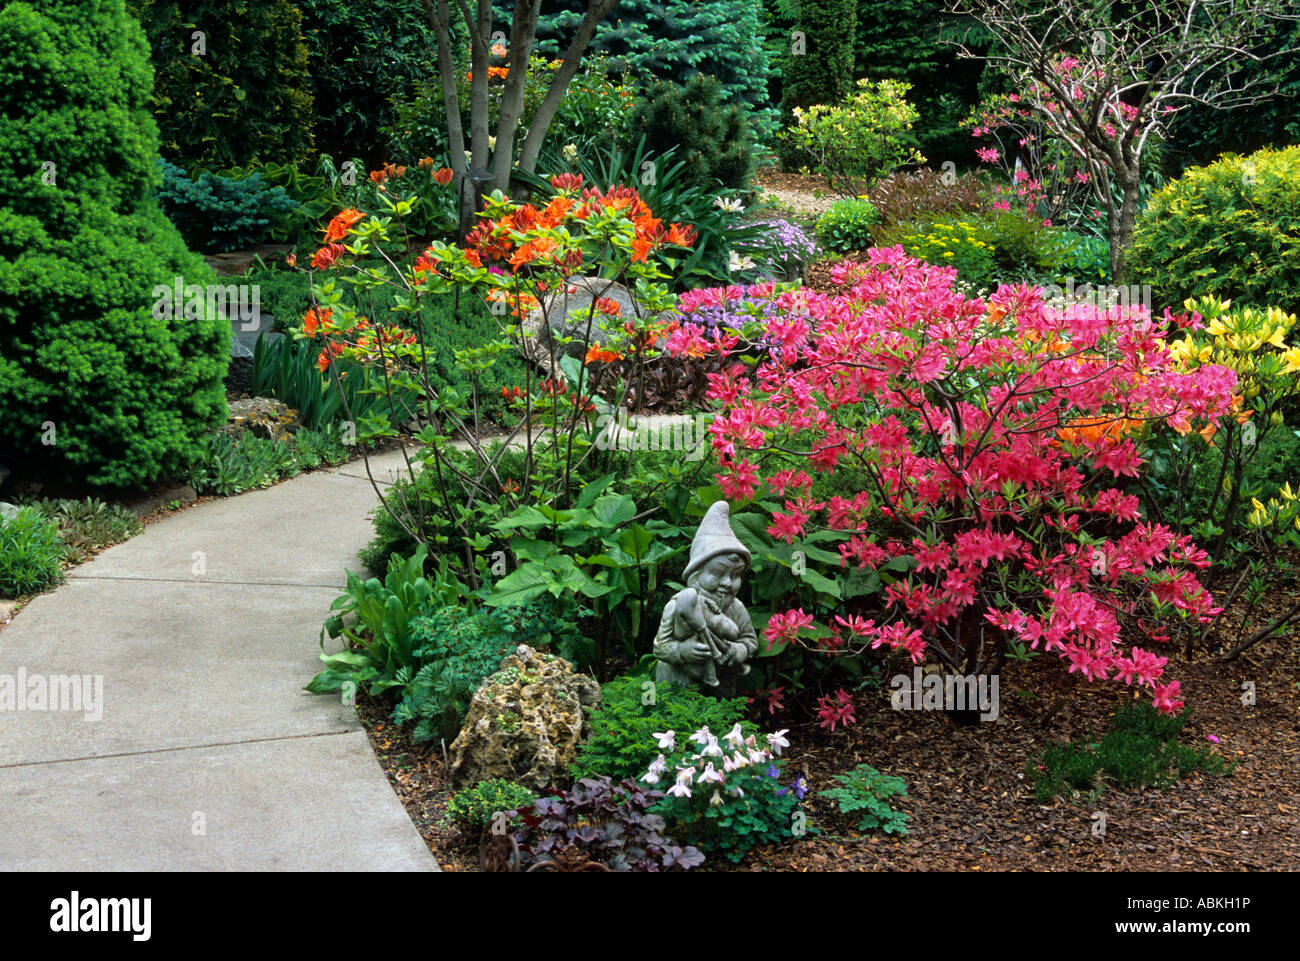 HOME GARDEN IN MINNEAPOLIS, MINNESOTA WITH BLOOMING RHODODENDRONS. MAY.  AMERICA.